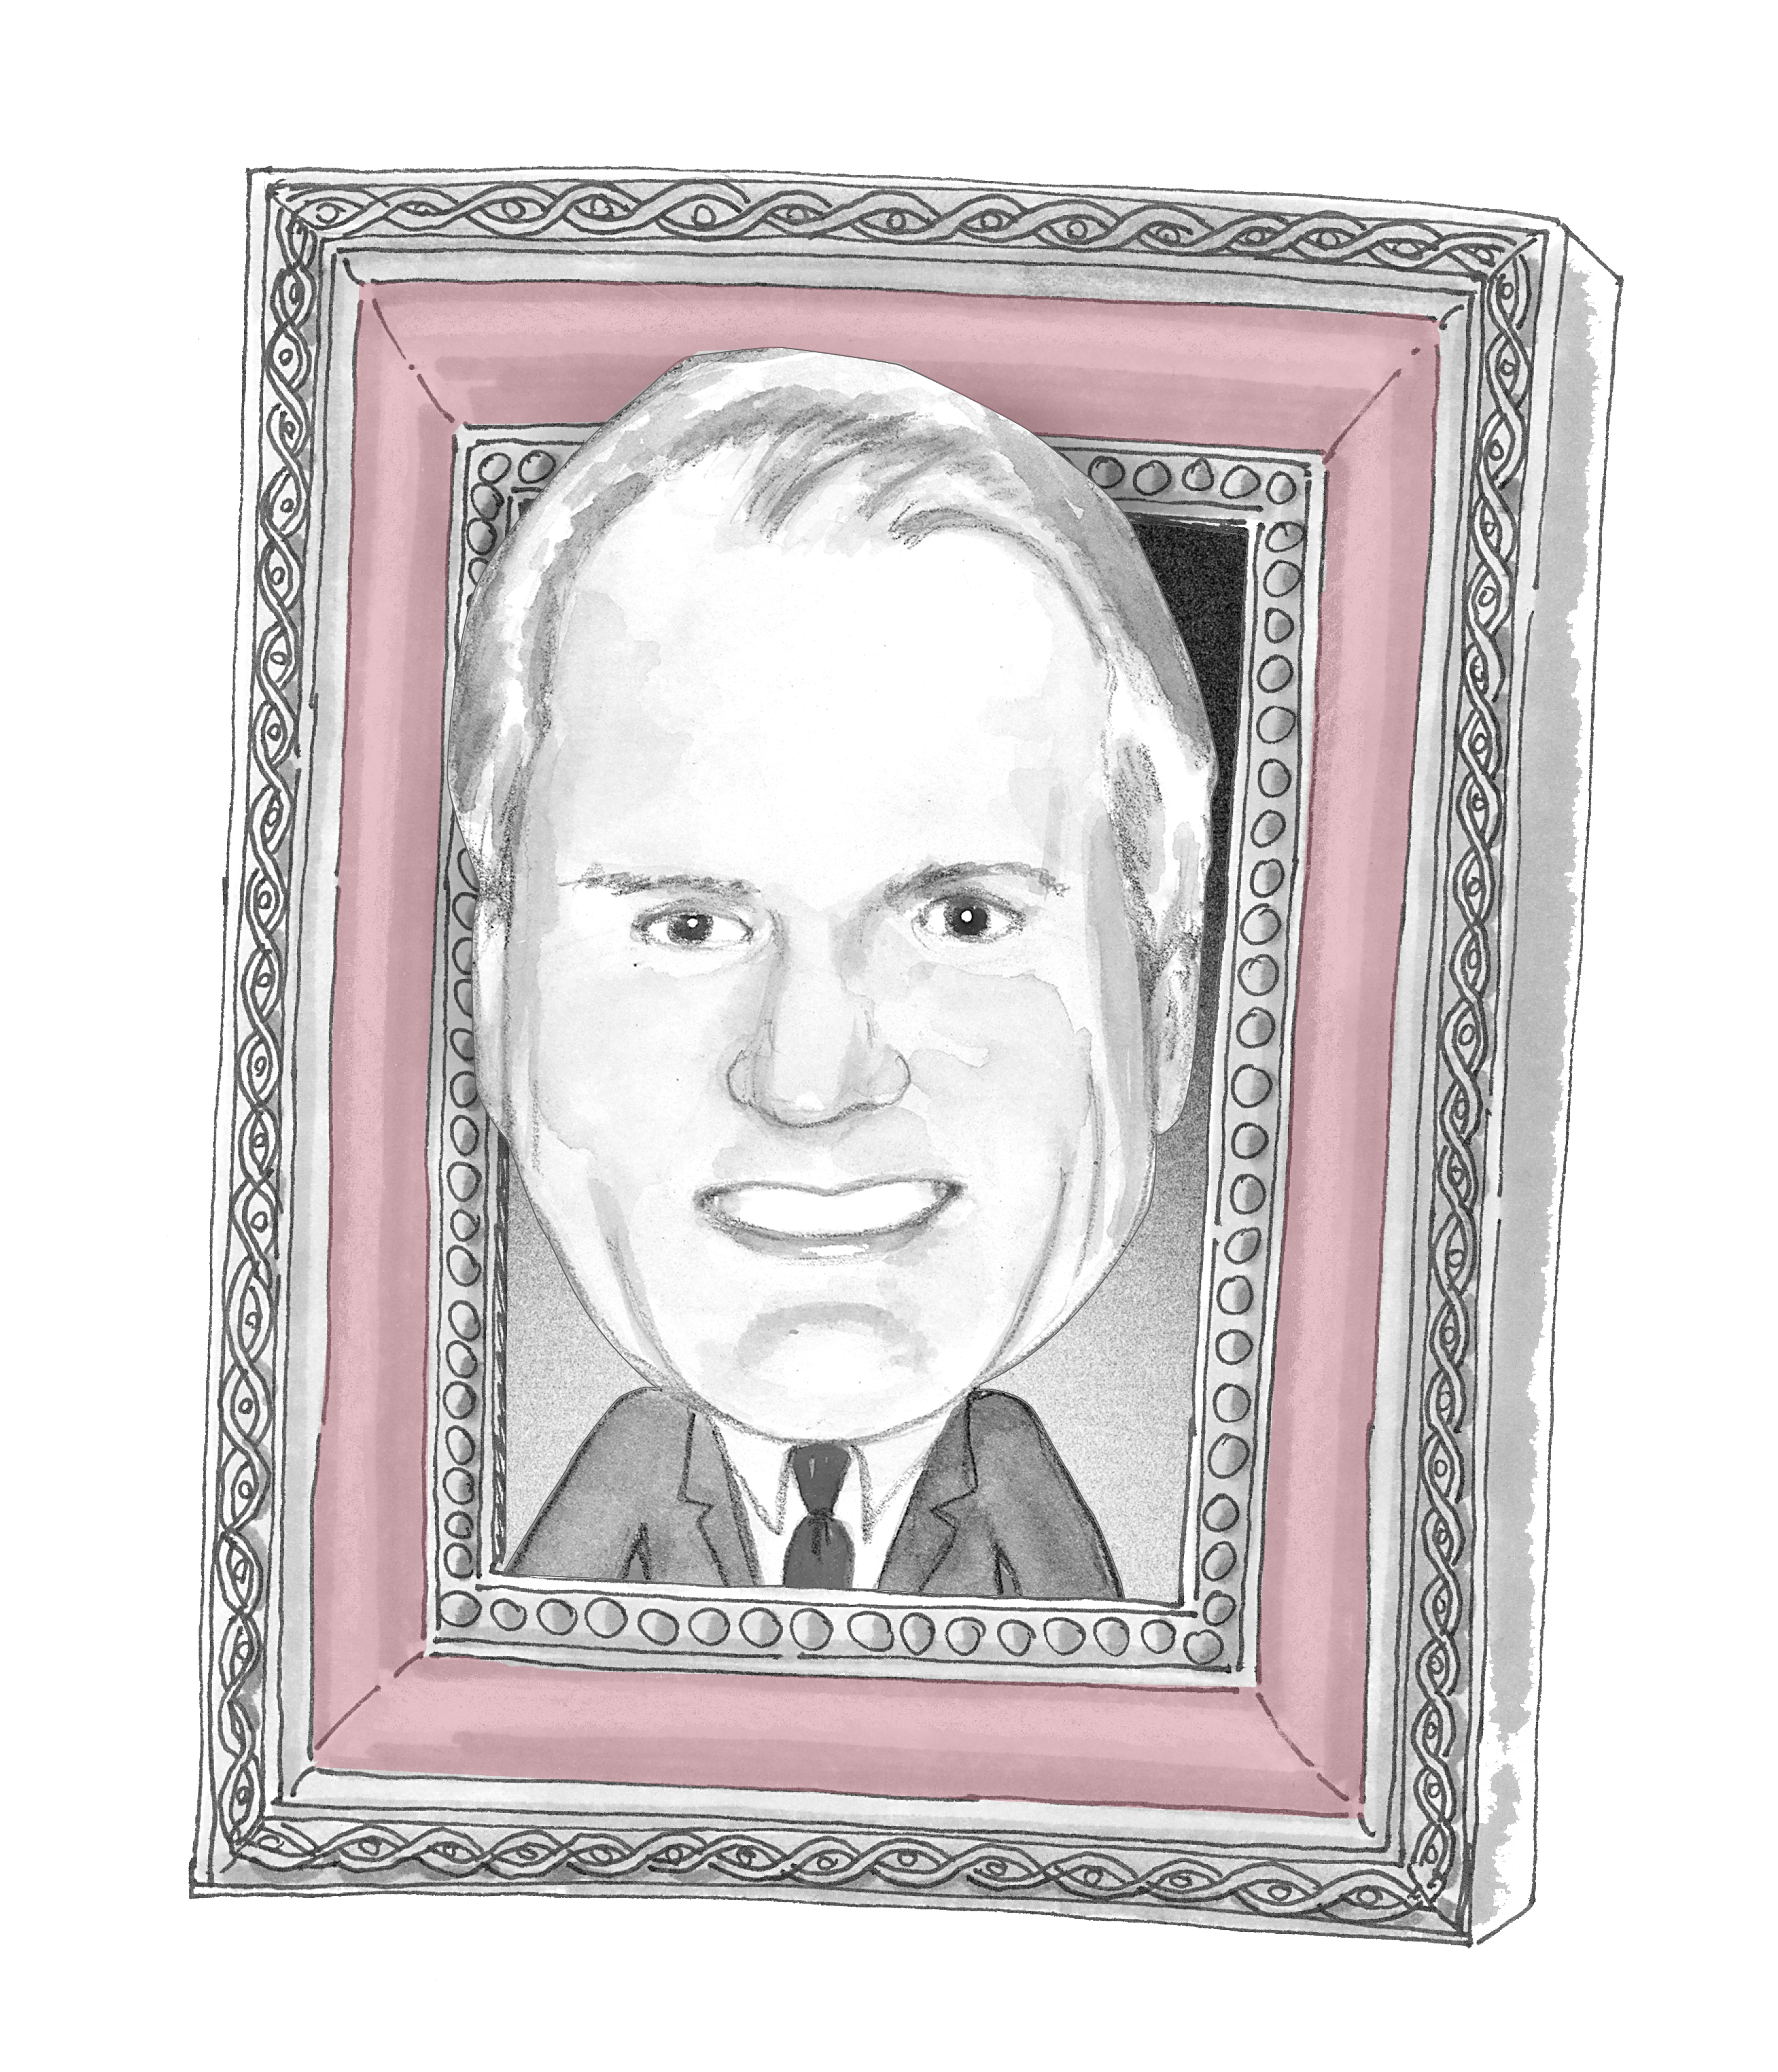 McRae Capital Management Commentary about Rod McRae Senior founding McRae Capital Management